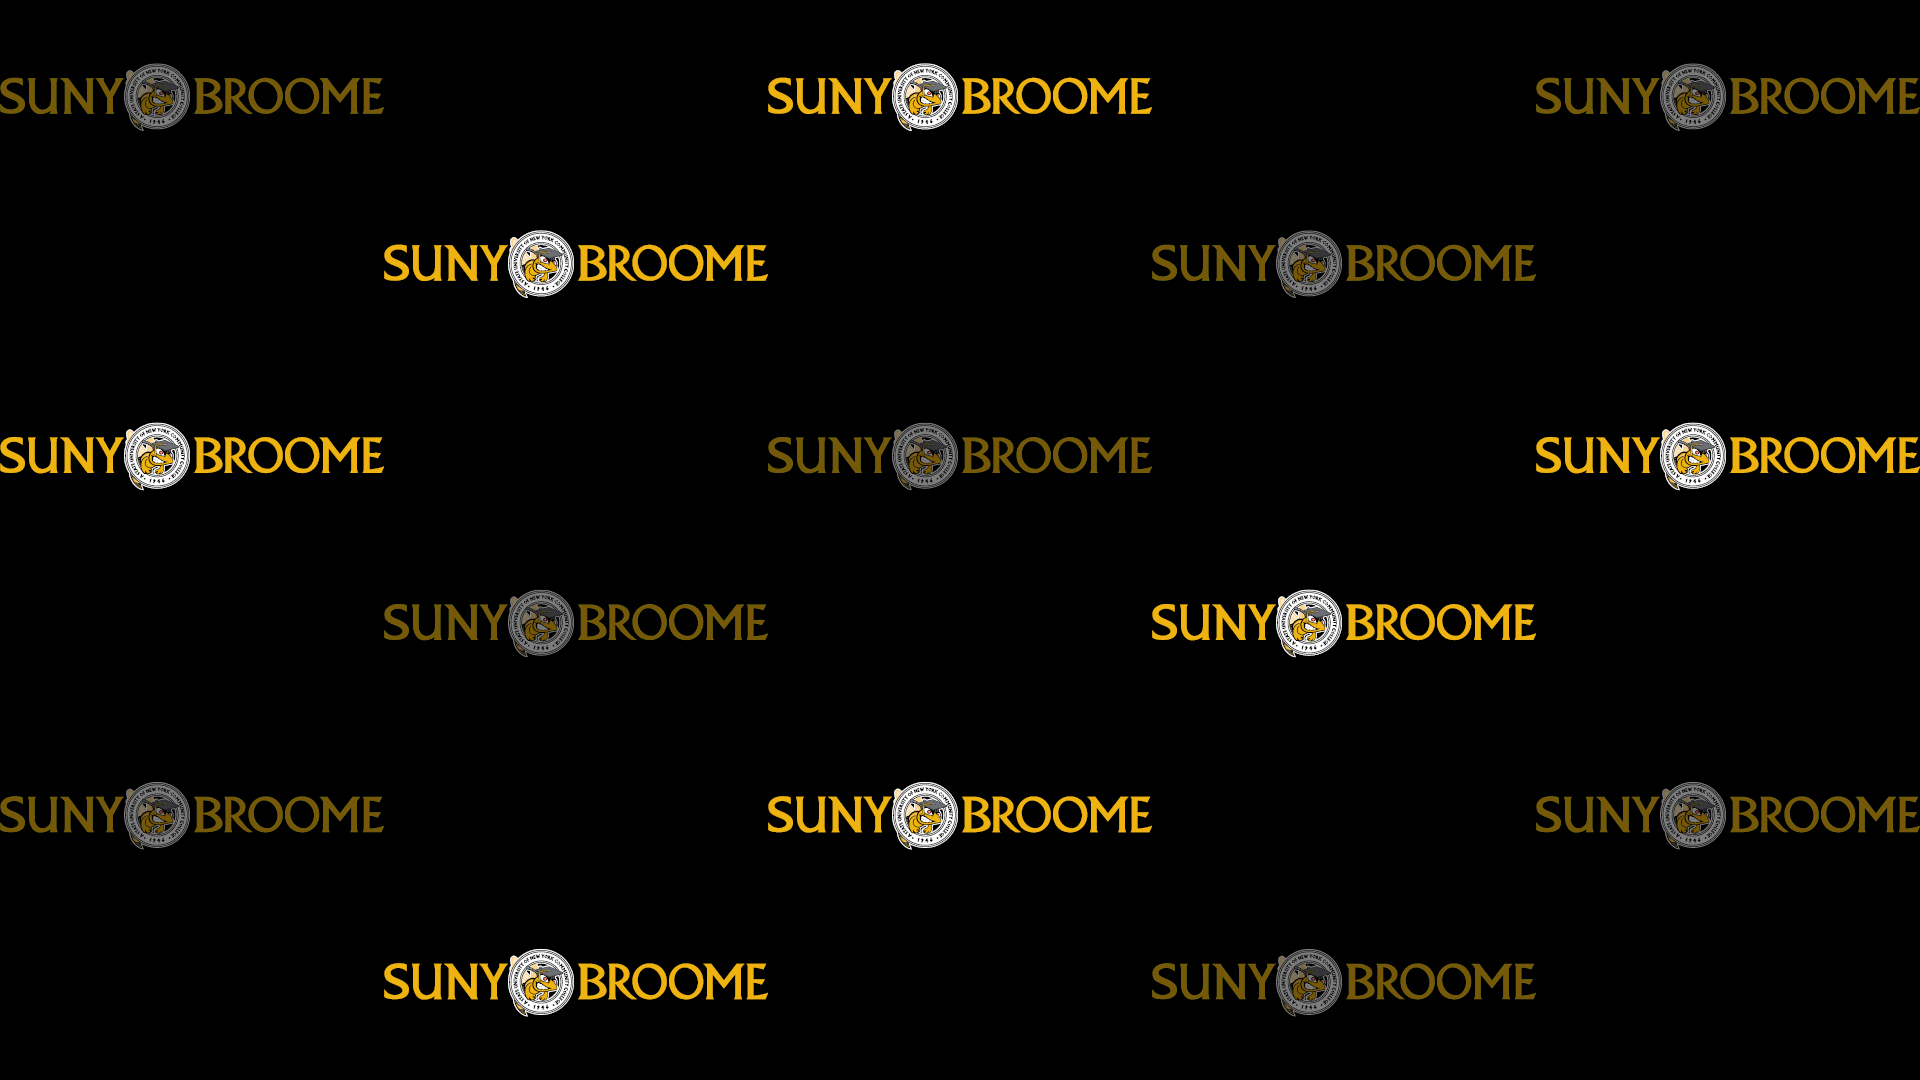 Download Zoom virtual background with yellow SUNY Broome logo tiled on black background (jpg)